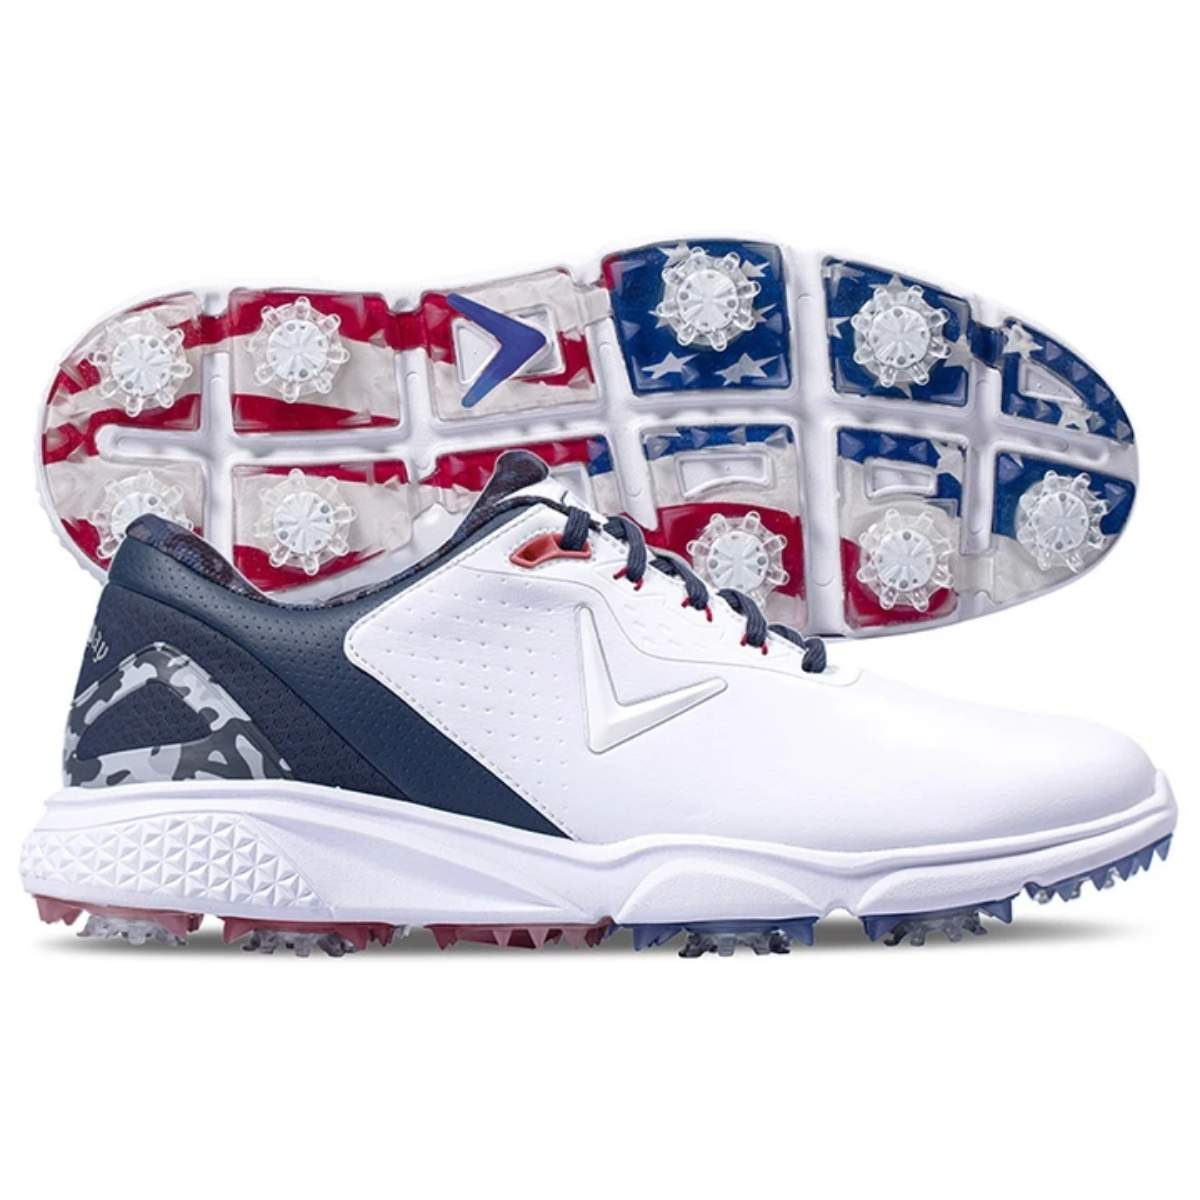 Callaway Men's Coronado V2 Golf Shoe - White/Blue/Red